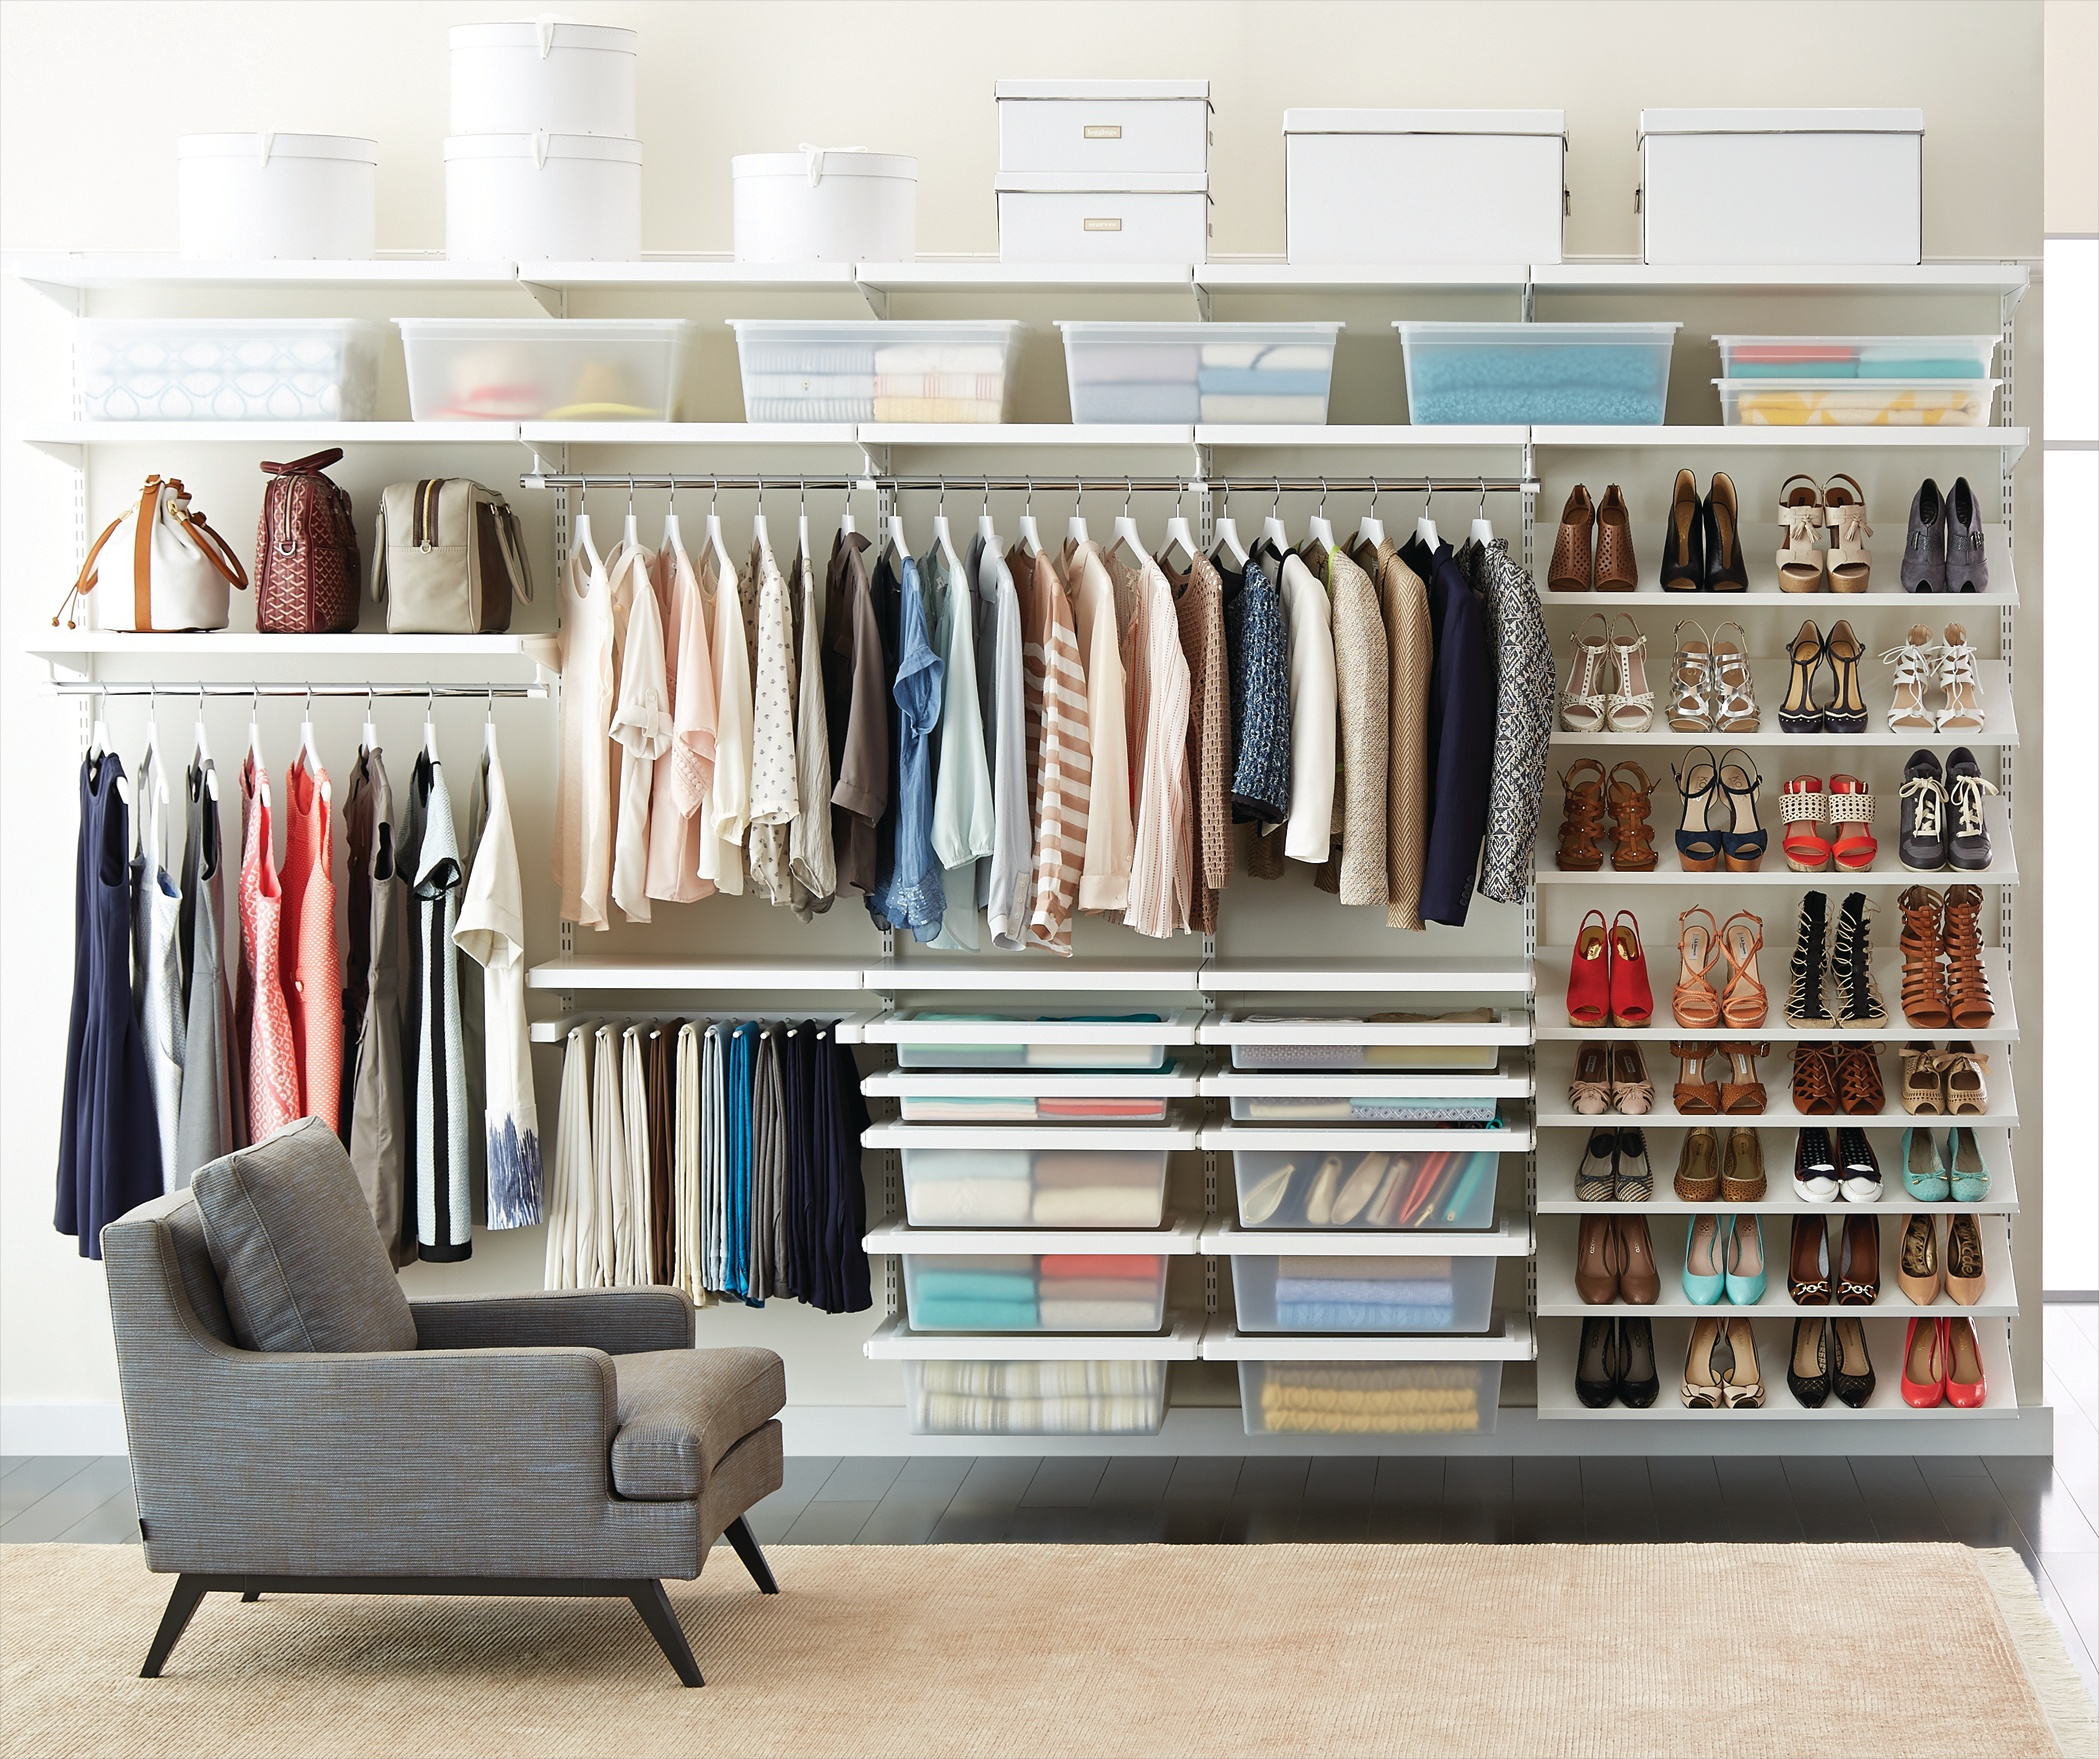 Lighting Ideas For Your Closet: Home Improvement Projects, Tips